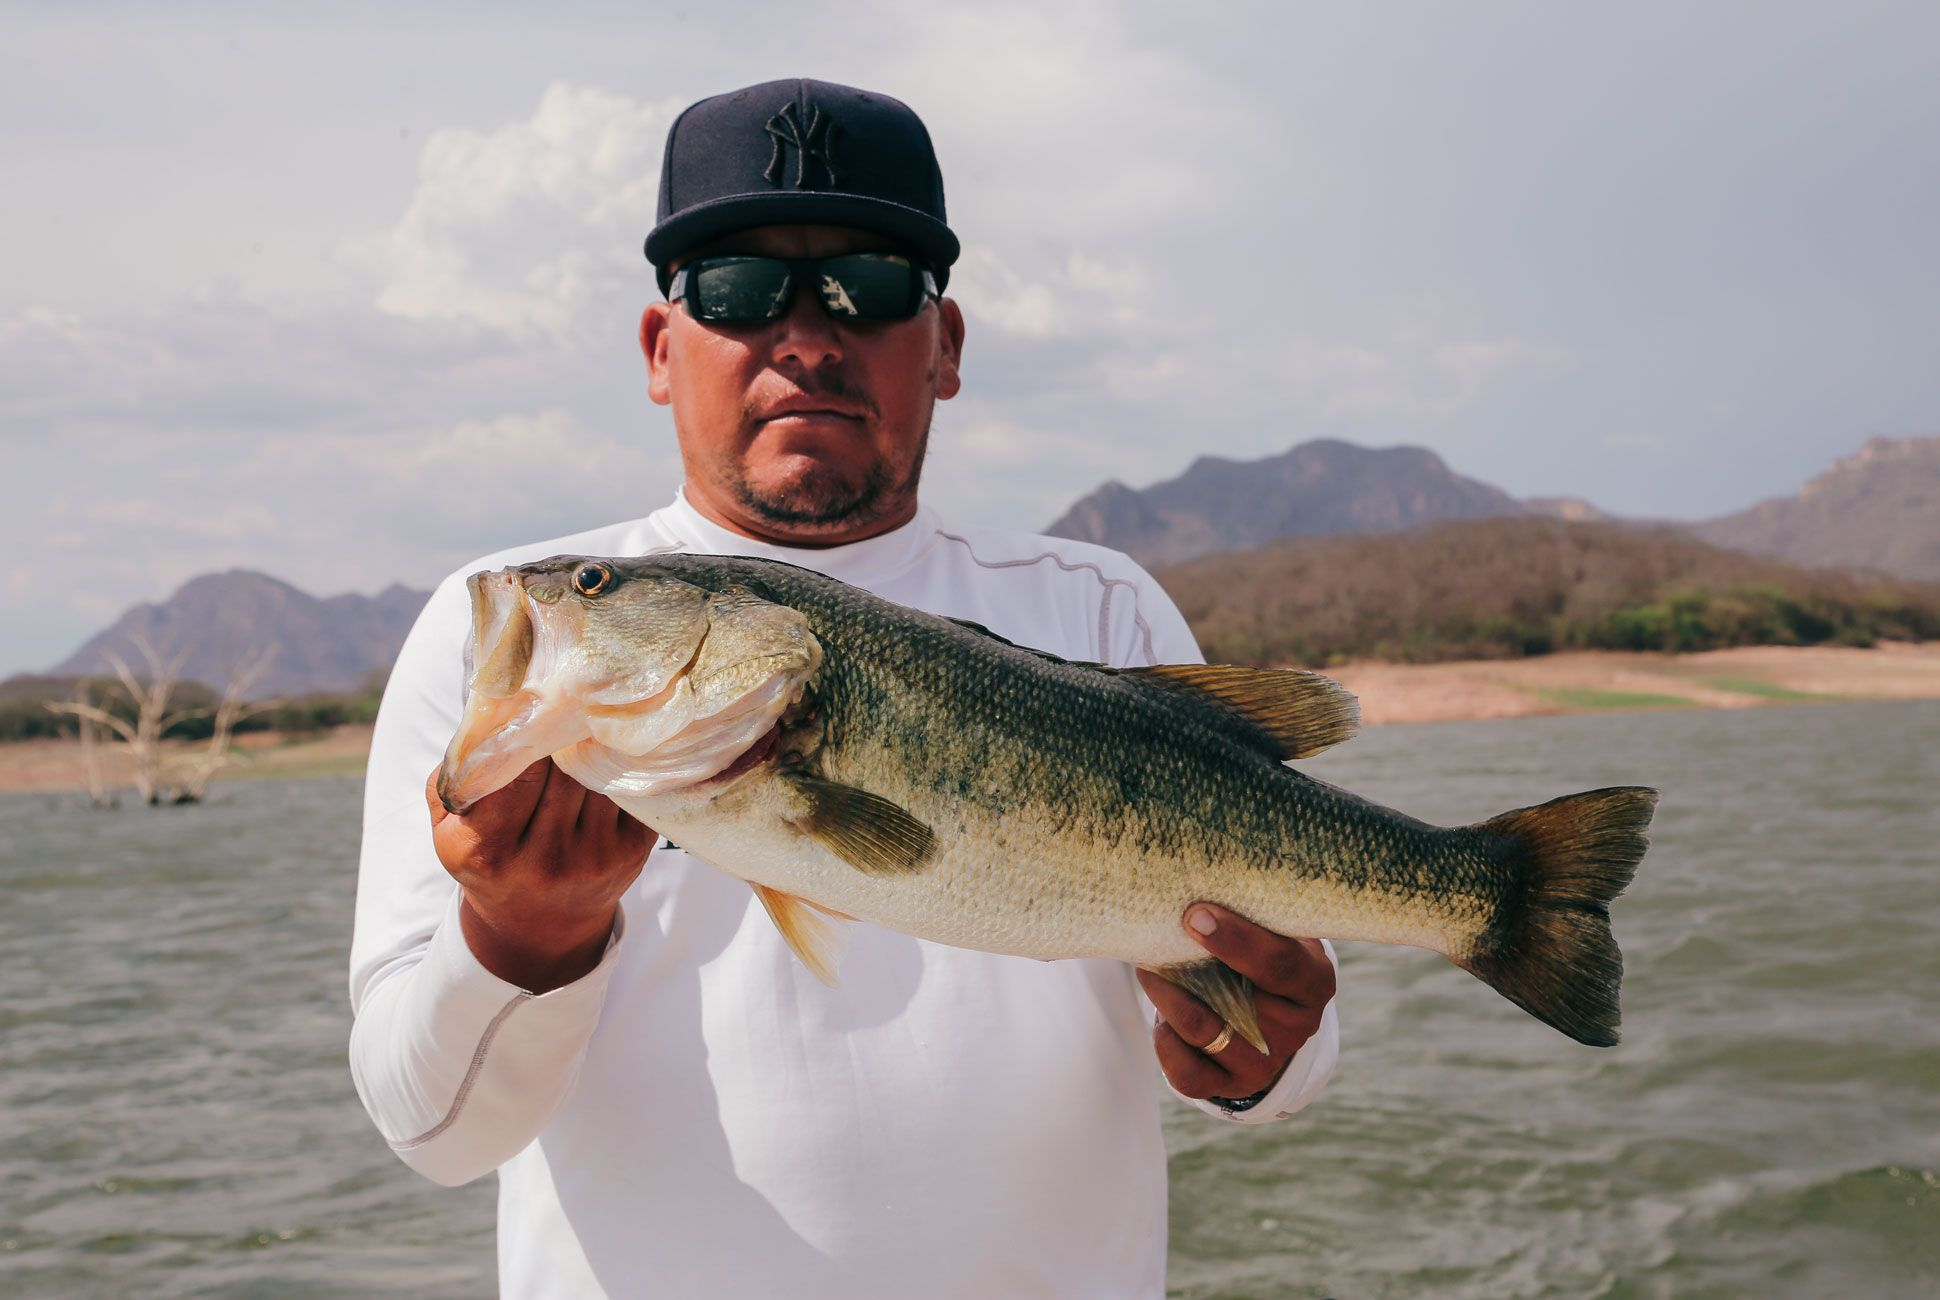 Juan, 30, makes his living as a guide on Lake El Salto. The Mexican government flooded the valley when he was just a child to create a lake for farming tilapia; when I ask him where he grew up, he pointed to the water about 50 yards from where we were casting.